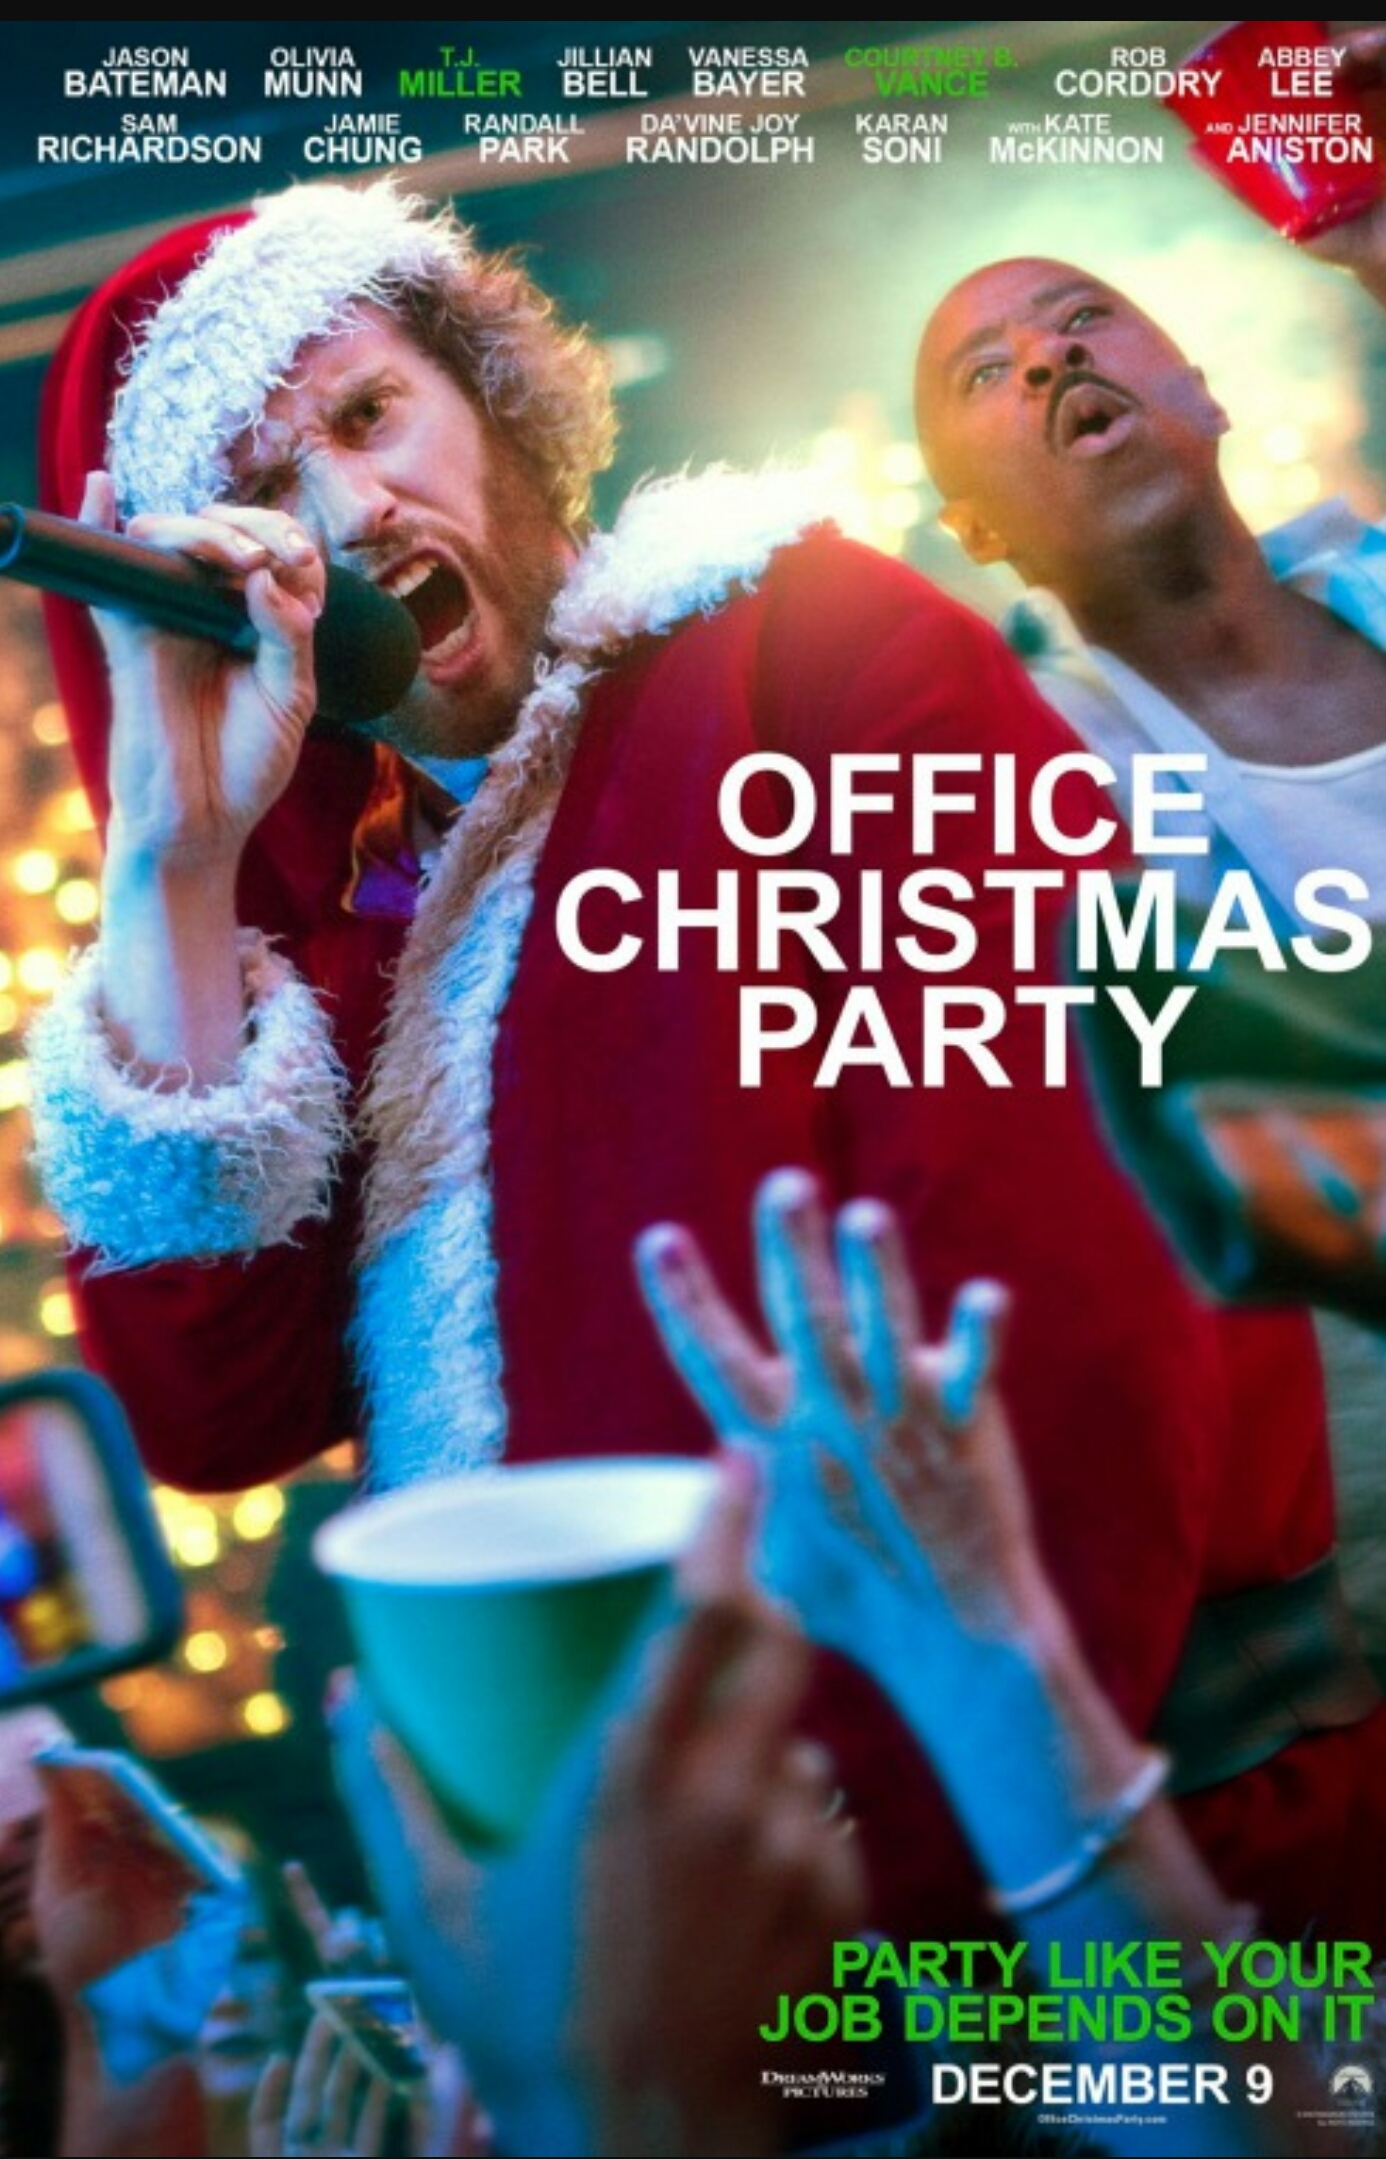 Movie Review #8: Office Christmas Party – Activities For Grown Folks